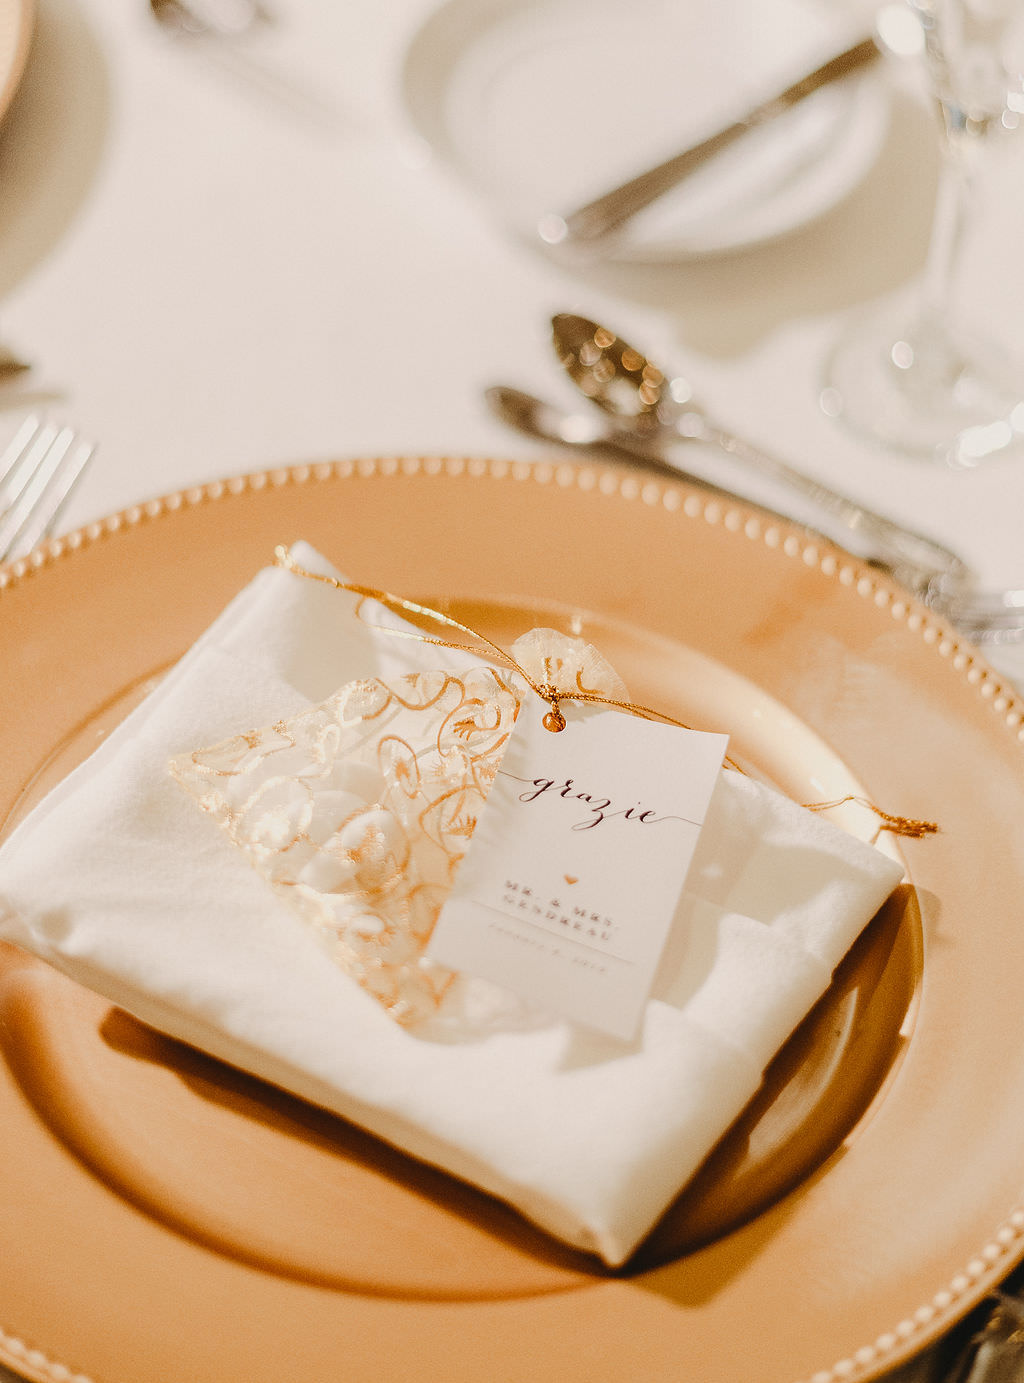 Classic Traditional Wedding Reception Decor, Gold Charger with White Linen and Wedding Favor